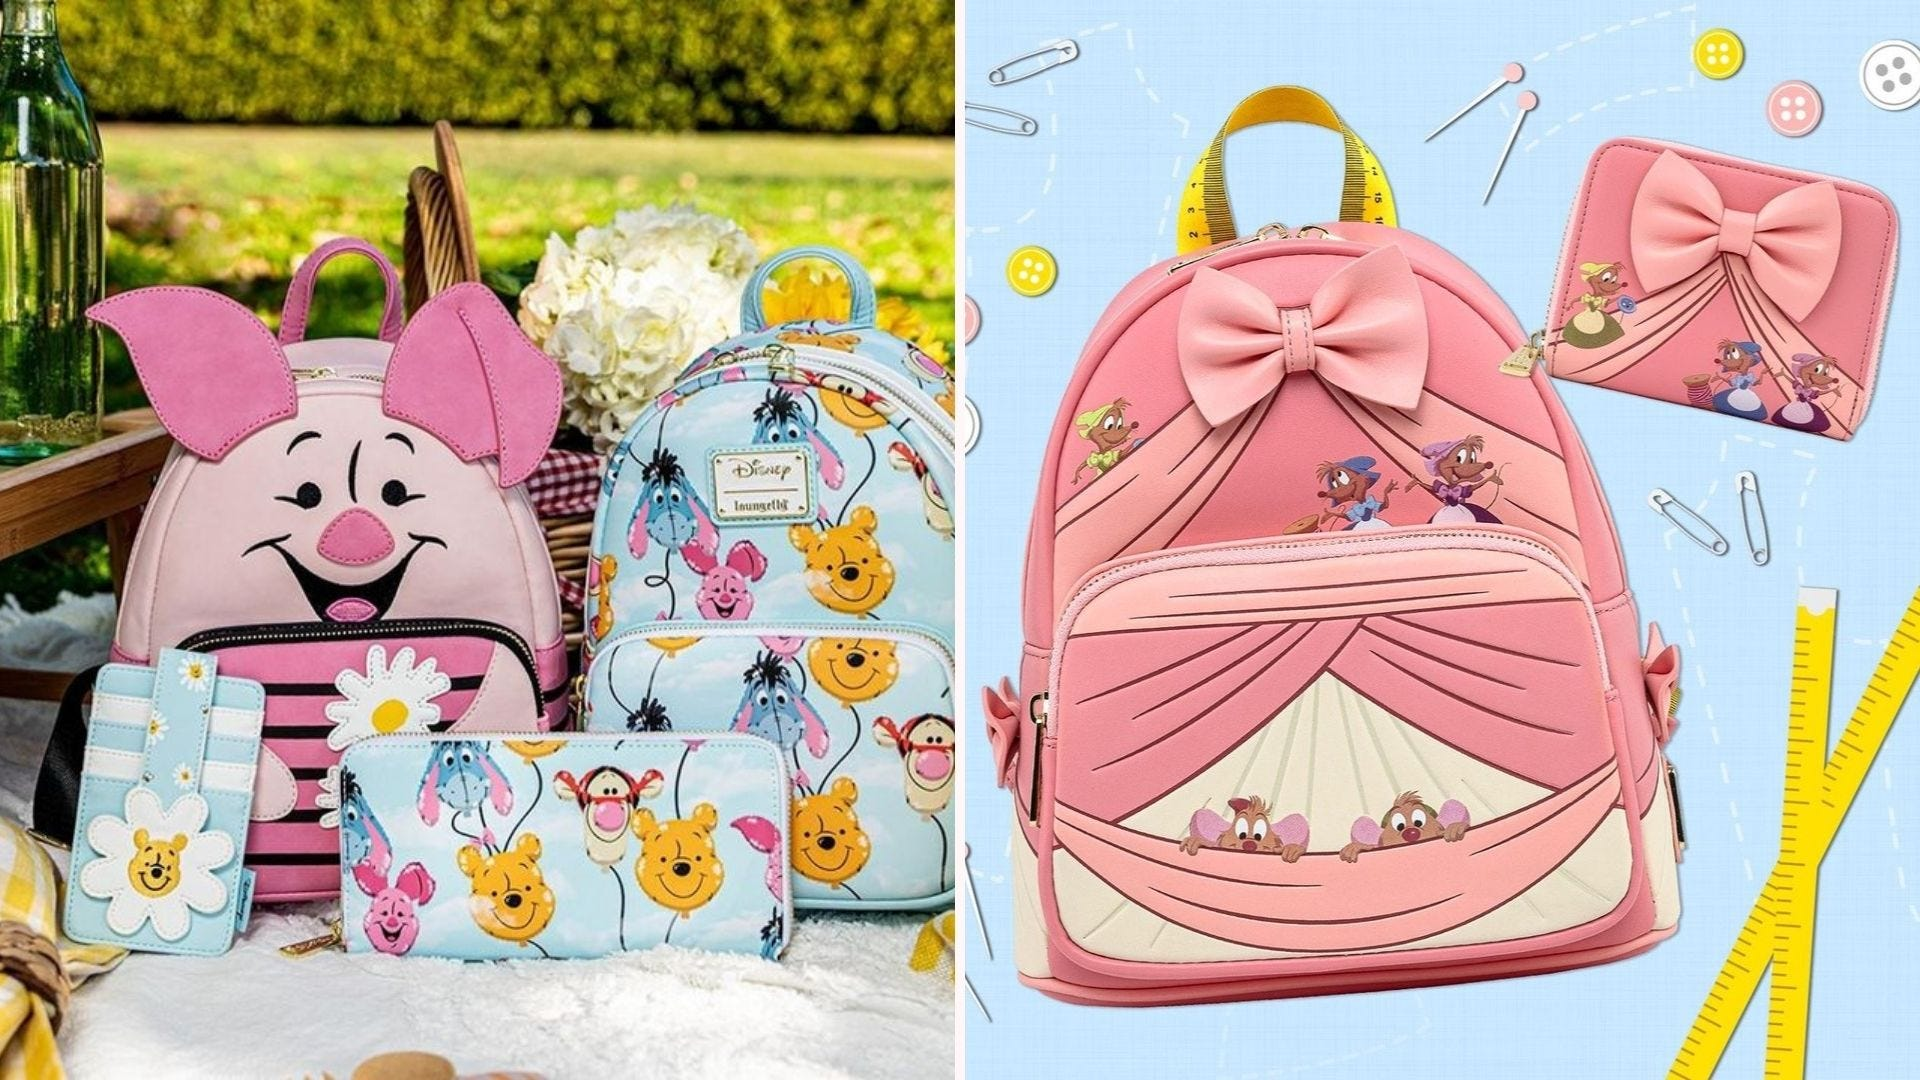 A Winnie-the-Pooh and Piglet purse and backpack; a backpack modeled on Cinderella's pink dress